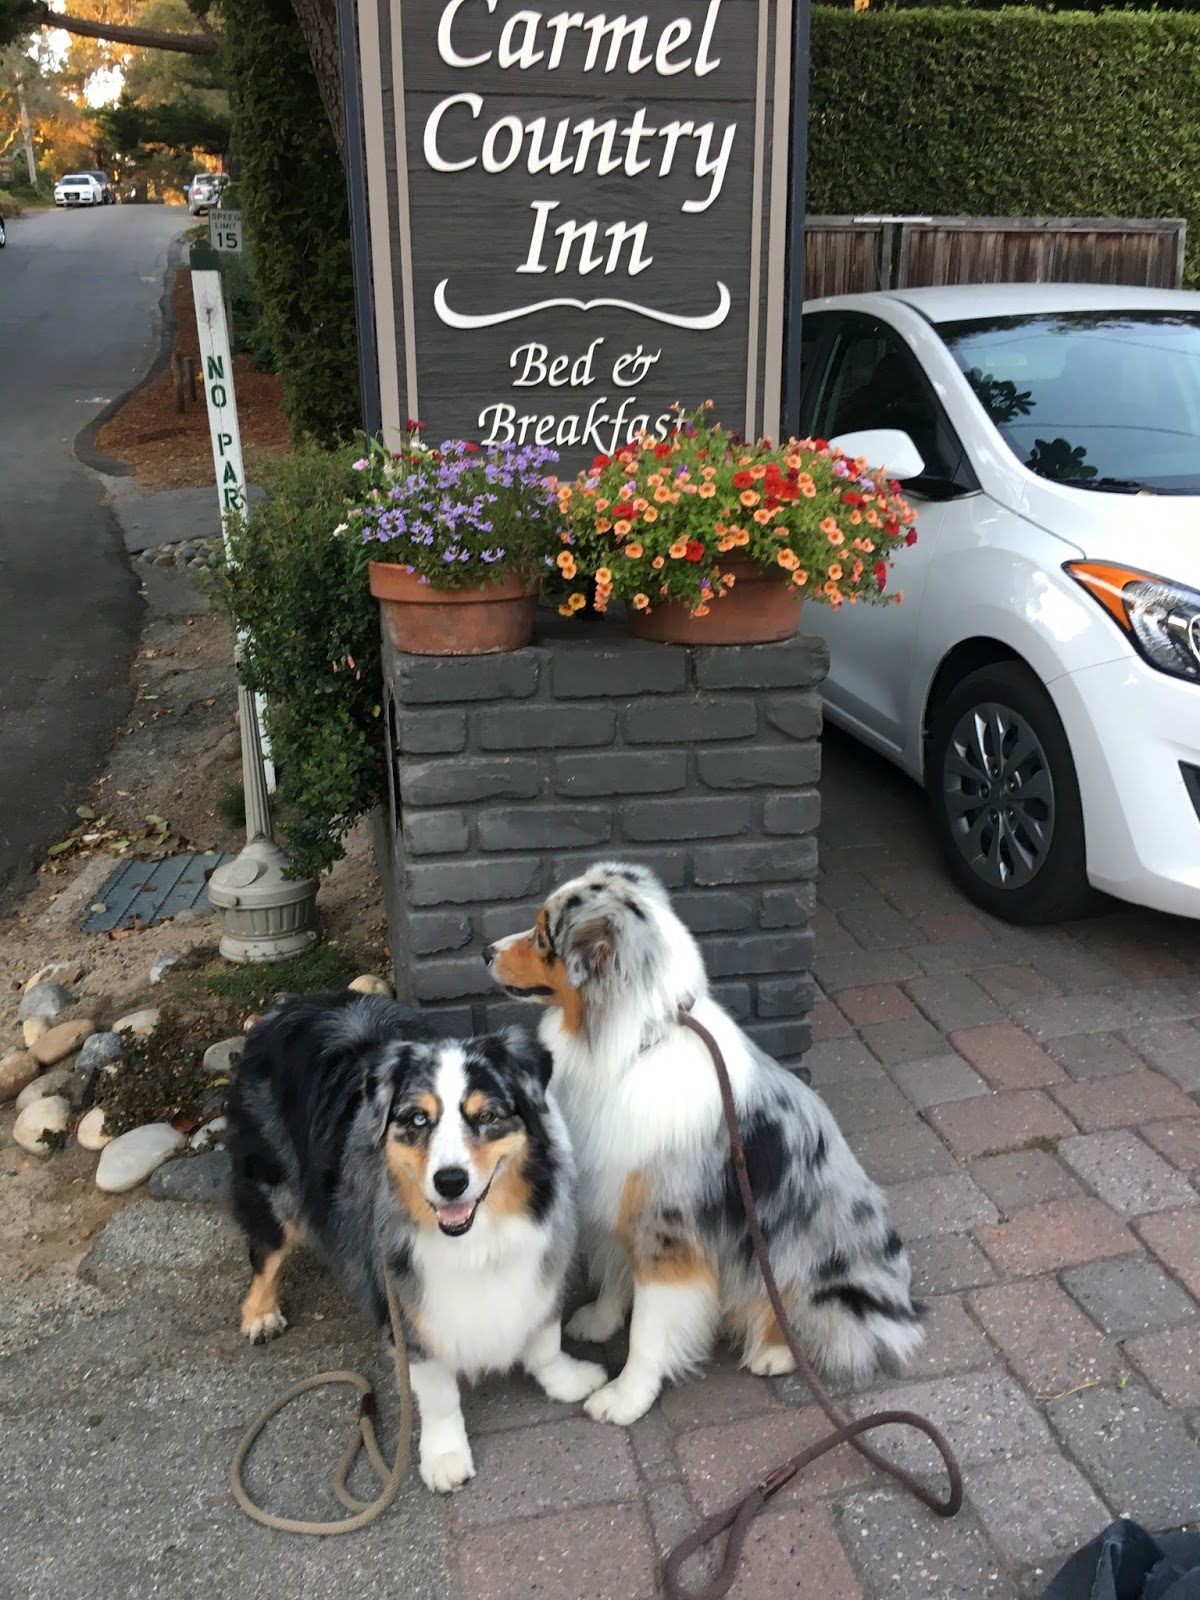 Bliss And Seven S Adventure In The Northern California Town Couldn T Have Been Better Carmel Has 25 Pet Friendly Hotels B Bs Inns